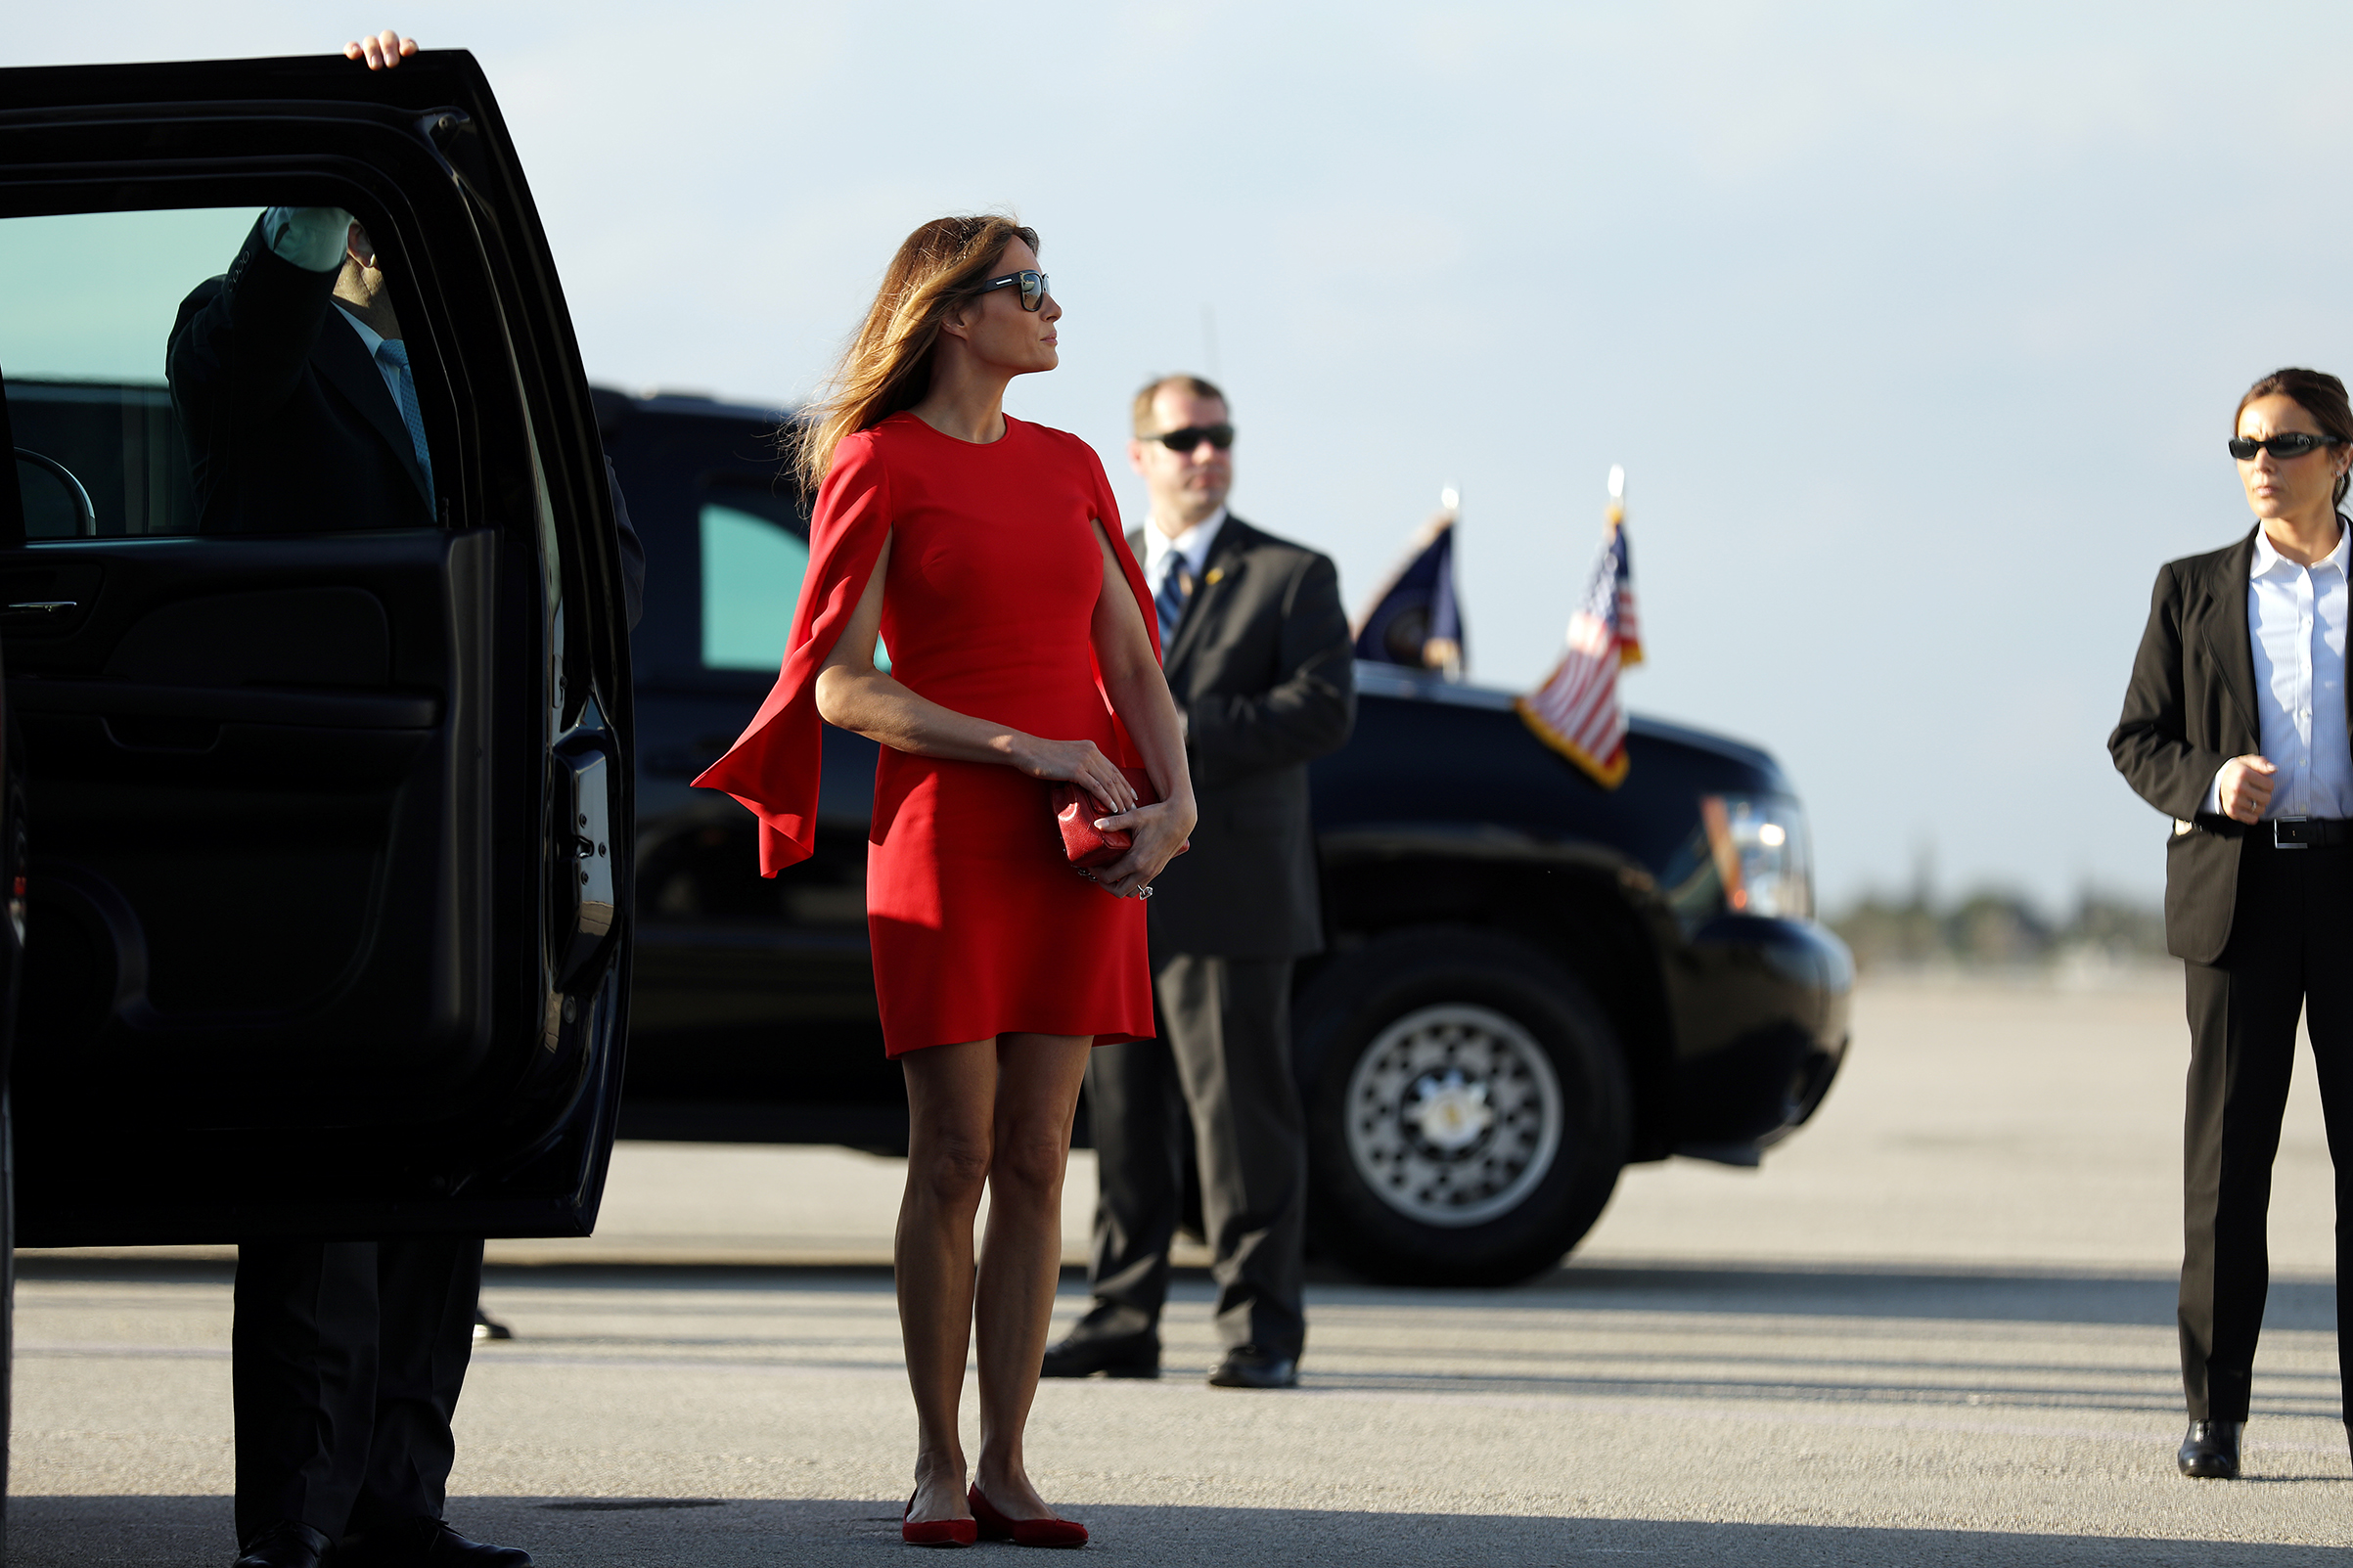 First lady Melania Trump wearing Givenchy red split-sleeve dress and red flats arrives to welcome U.S. President Donald Trump (not pictured) at West Palm Beach International airport in West Palm Beach, Fla., Feb. 3, 2017.